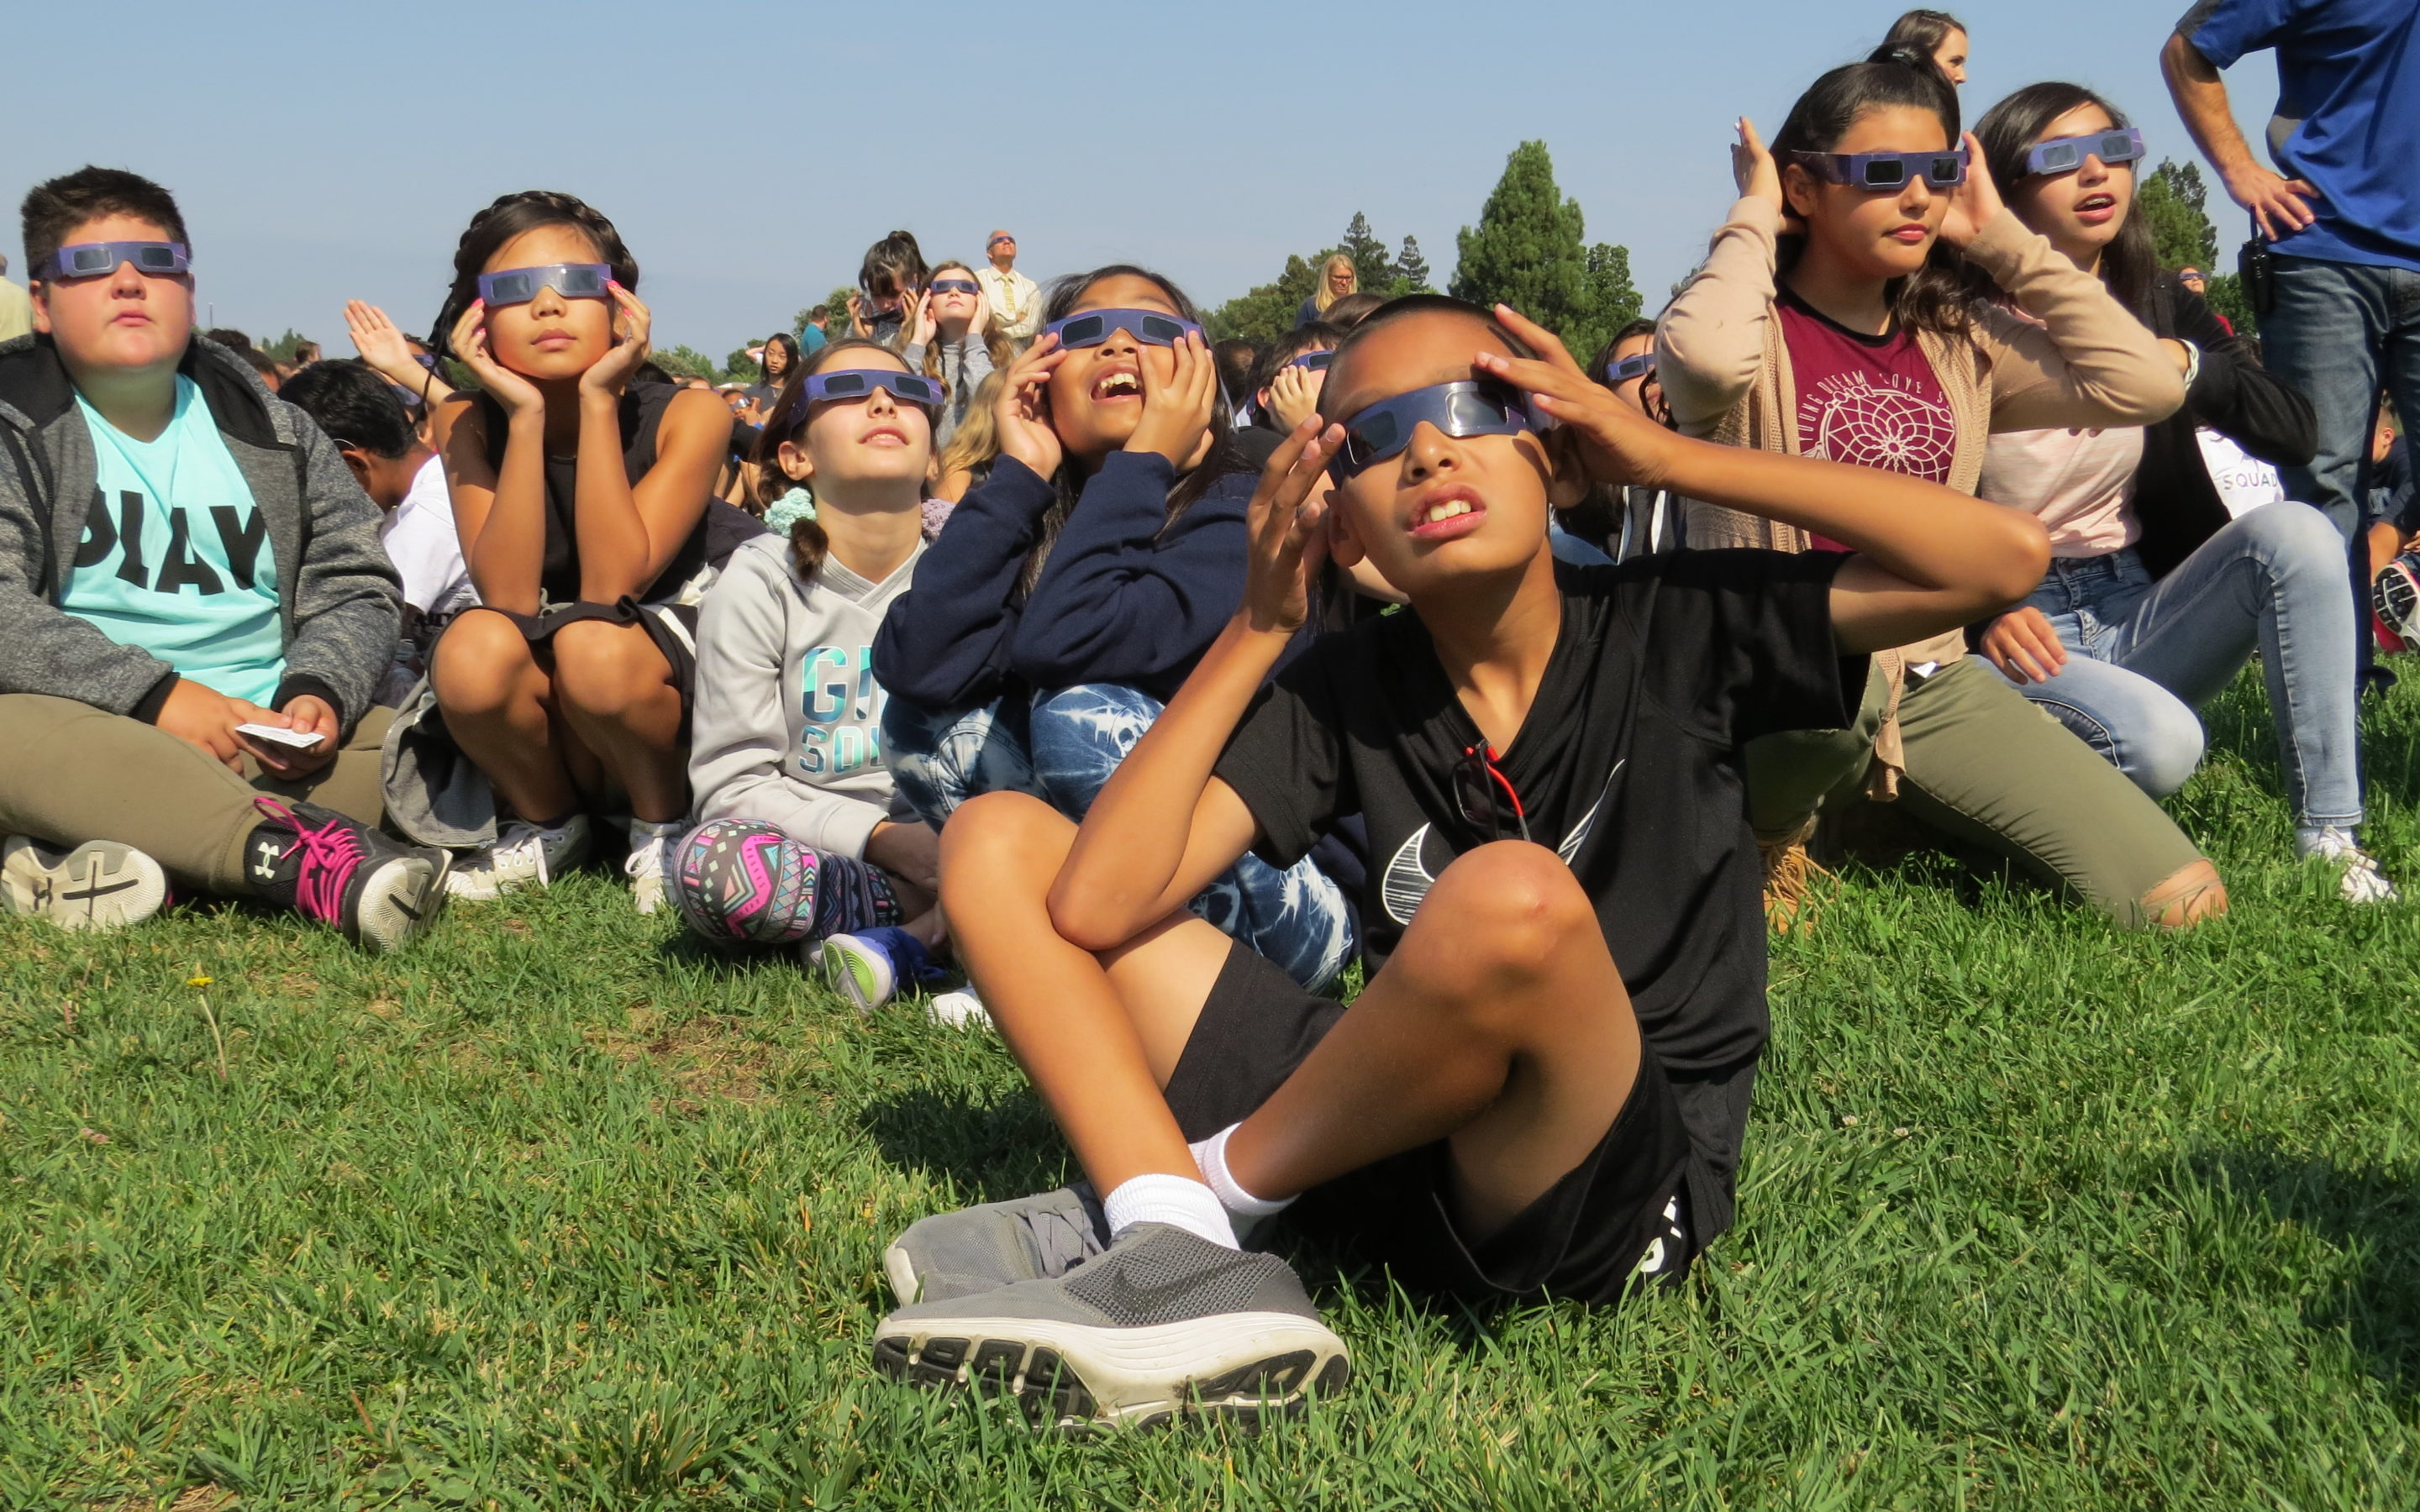 Main story: Solar eclipse awes students, provides great teaching moment